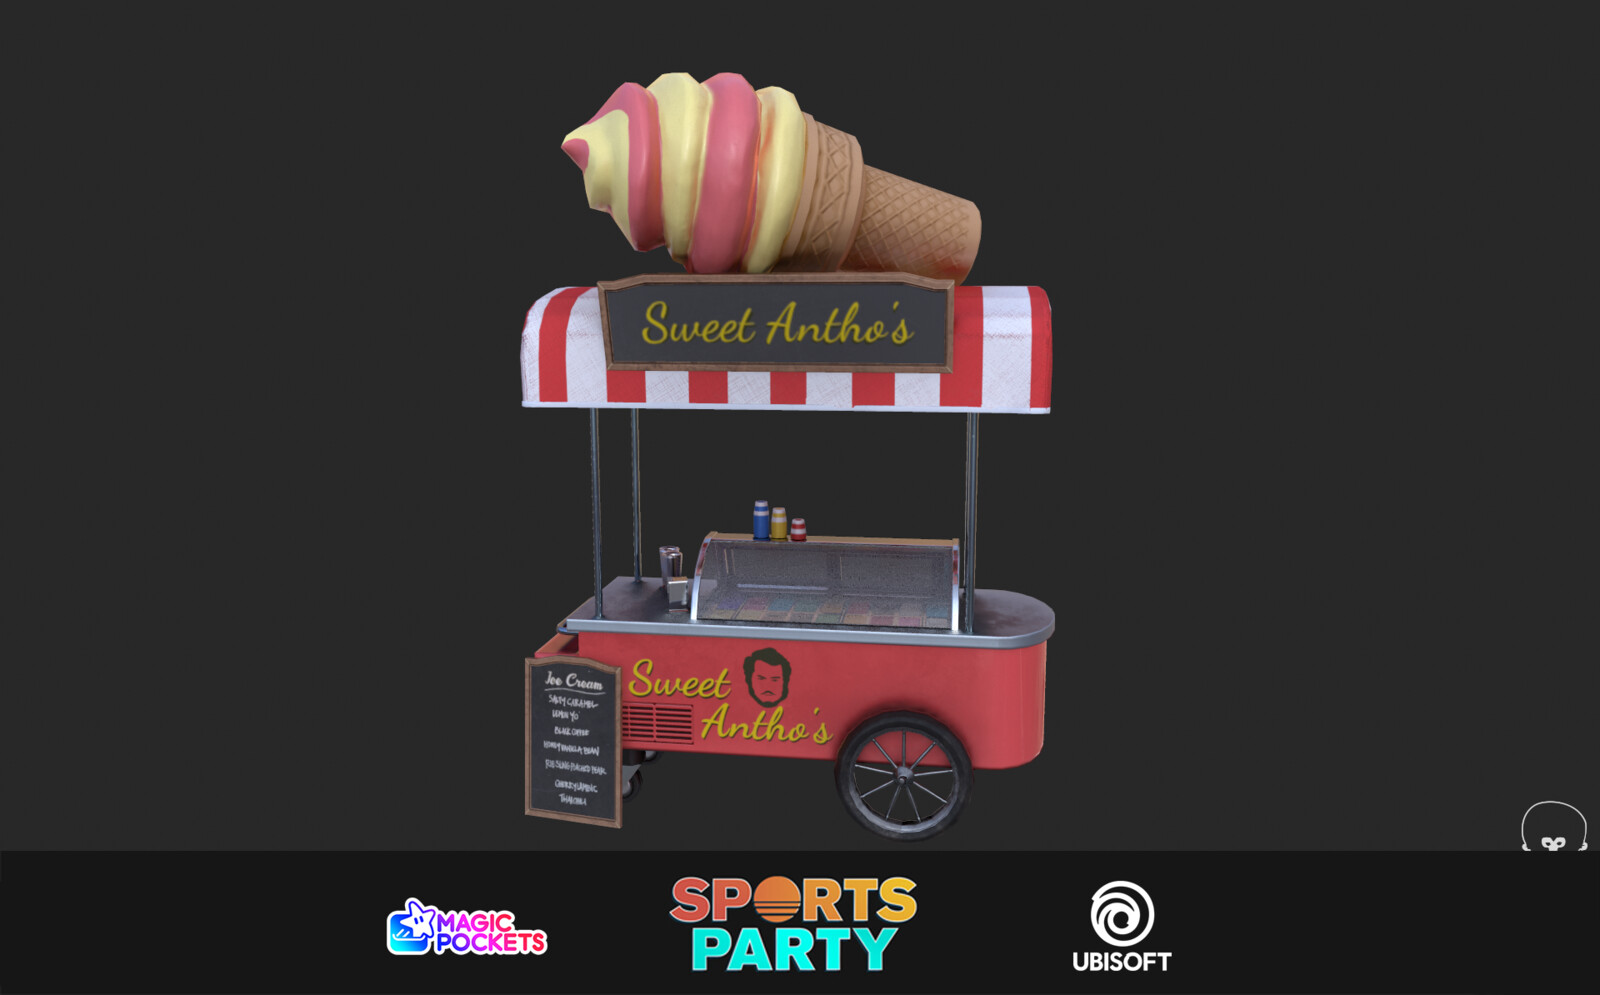 Sports Party - Props & Materials